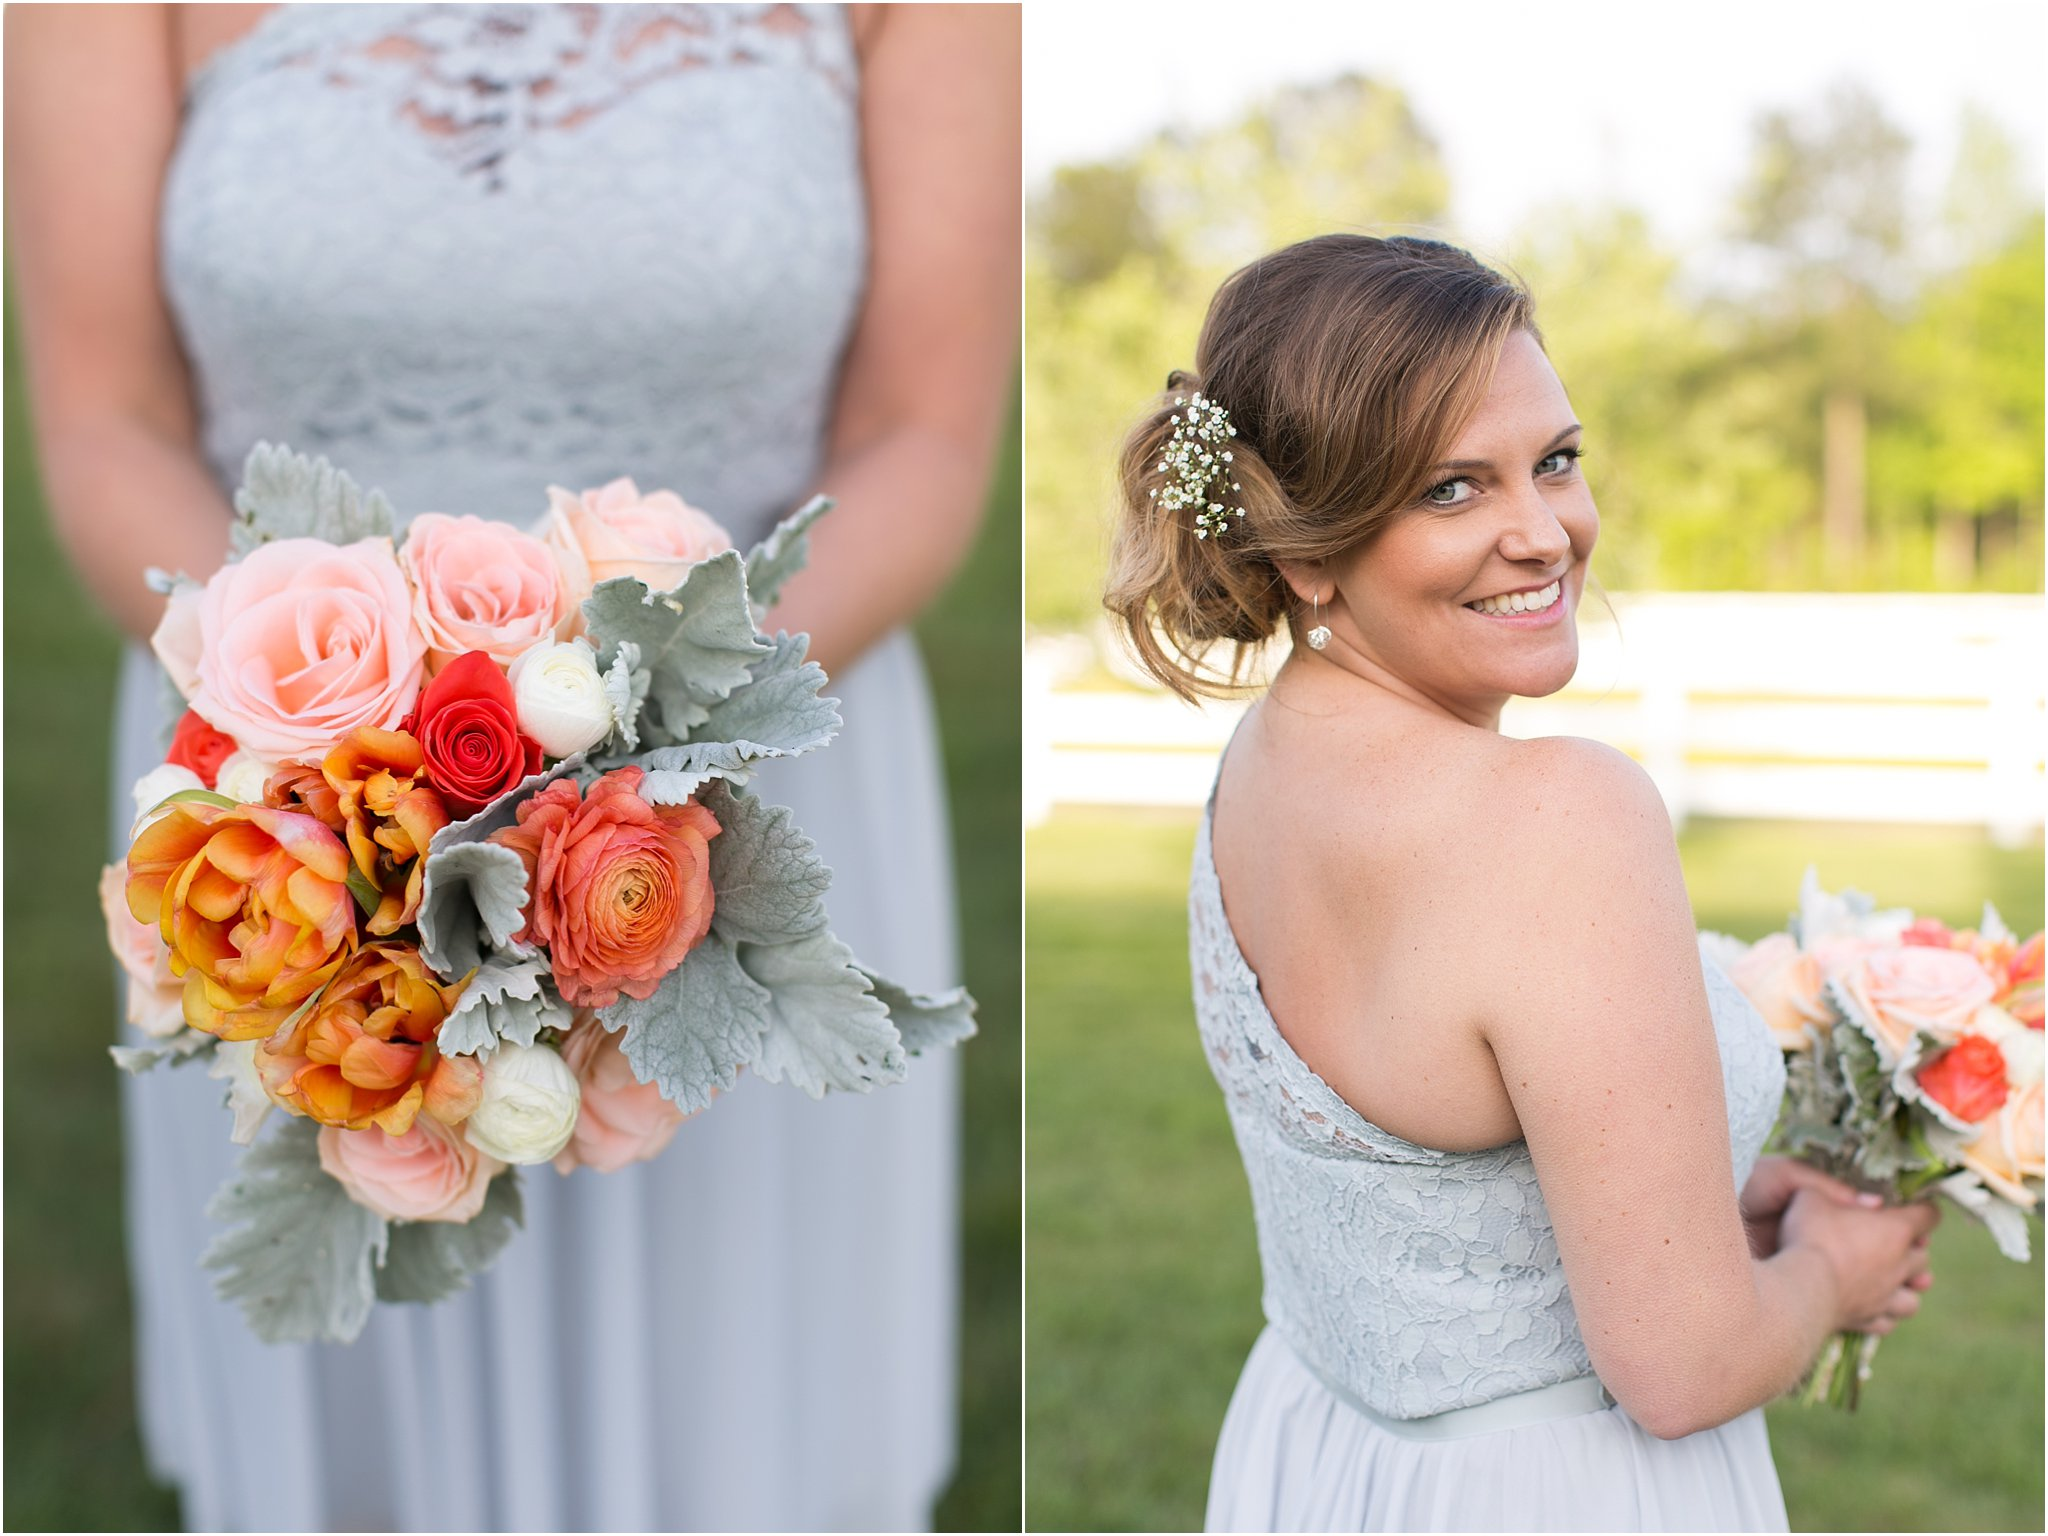 jessica_ryan_photography_holly_ridge_manor_wedding_roost_flowers_jamie_leigh_events_dhalia_edwards_candid_vibrant_wedding_colors_1314